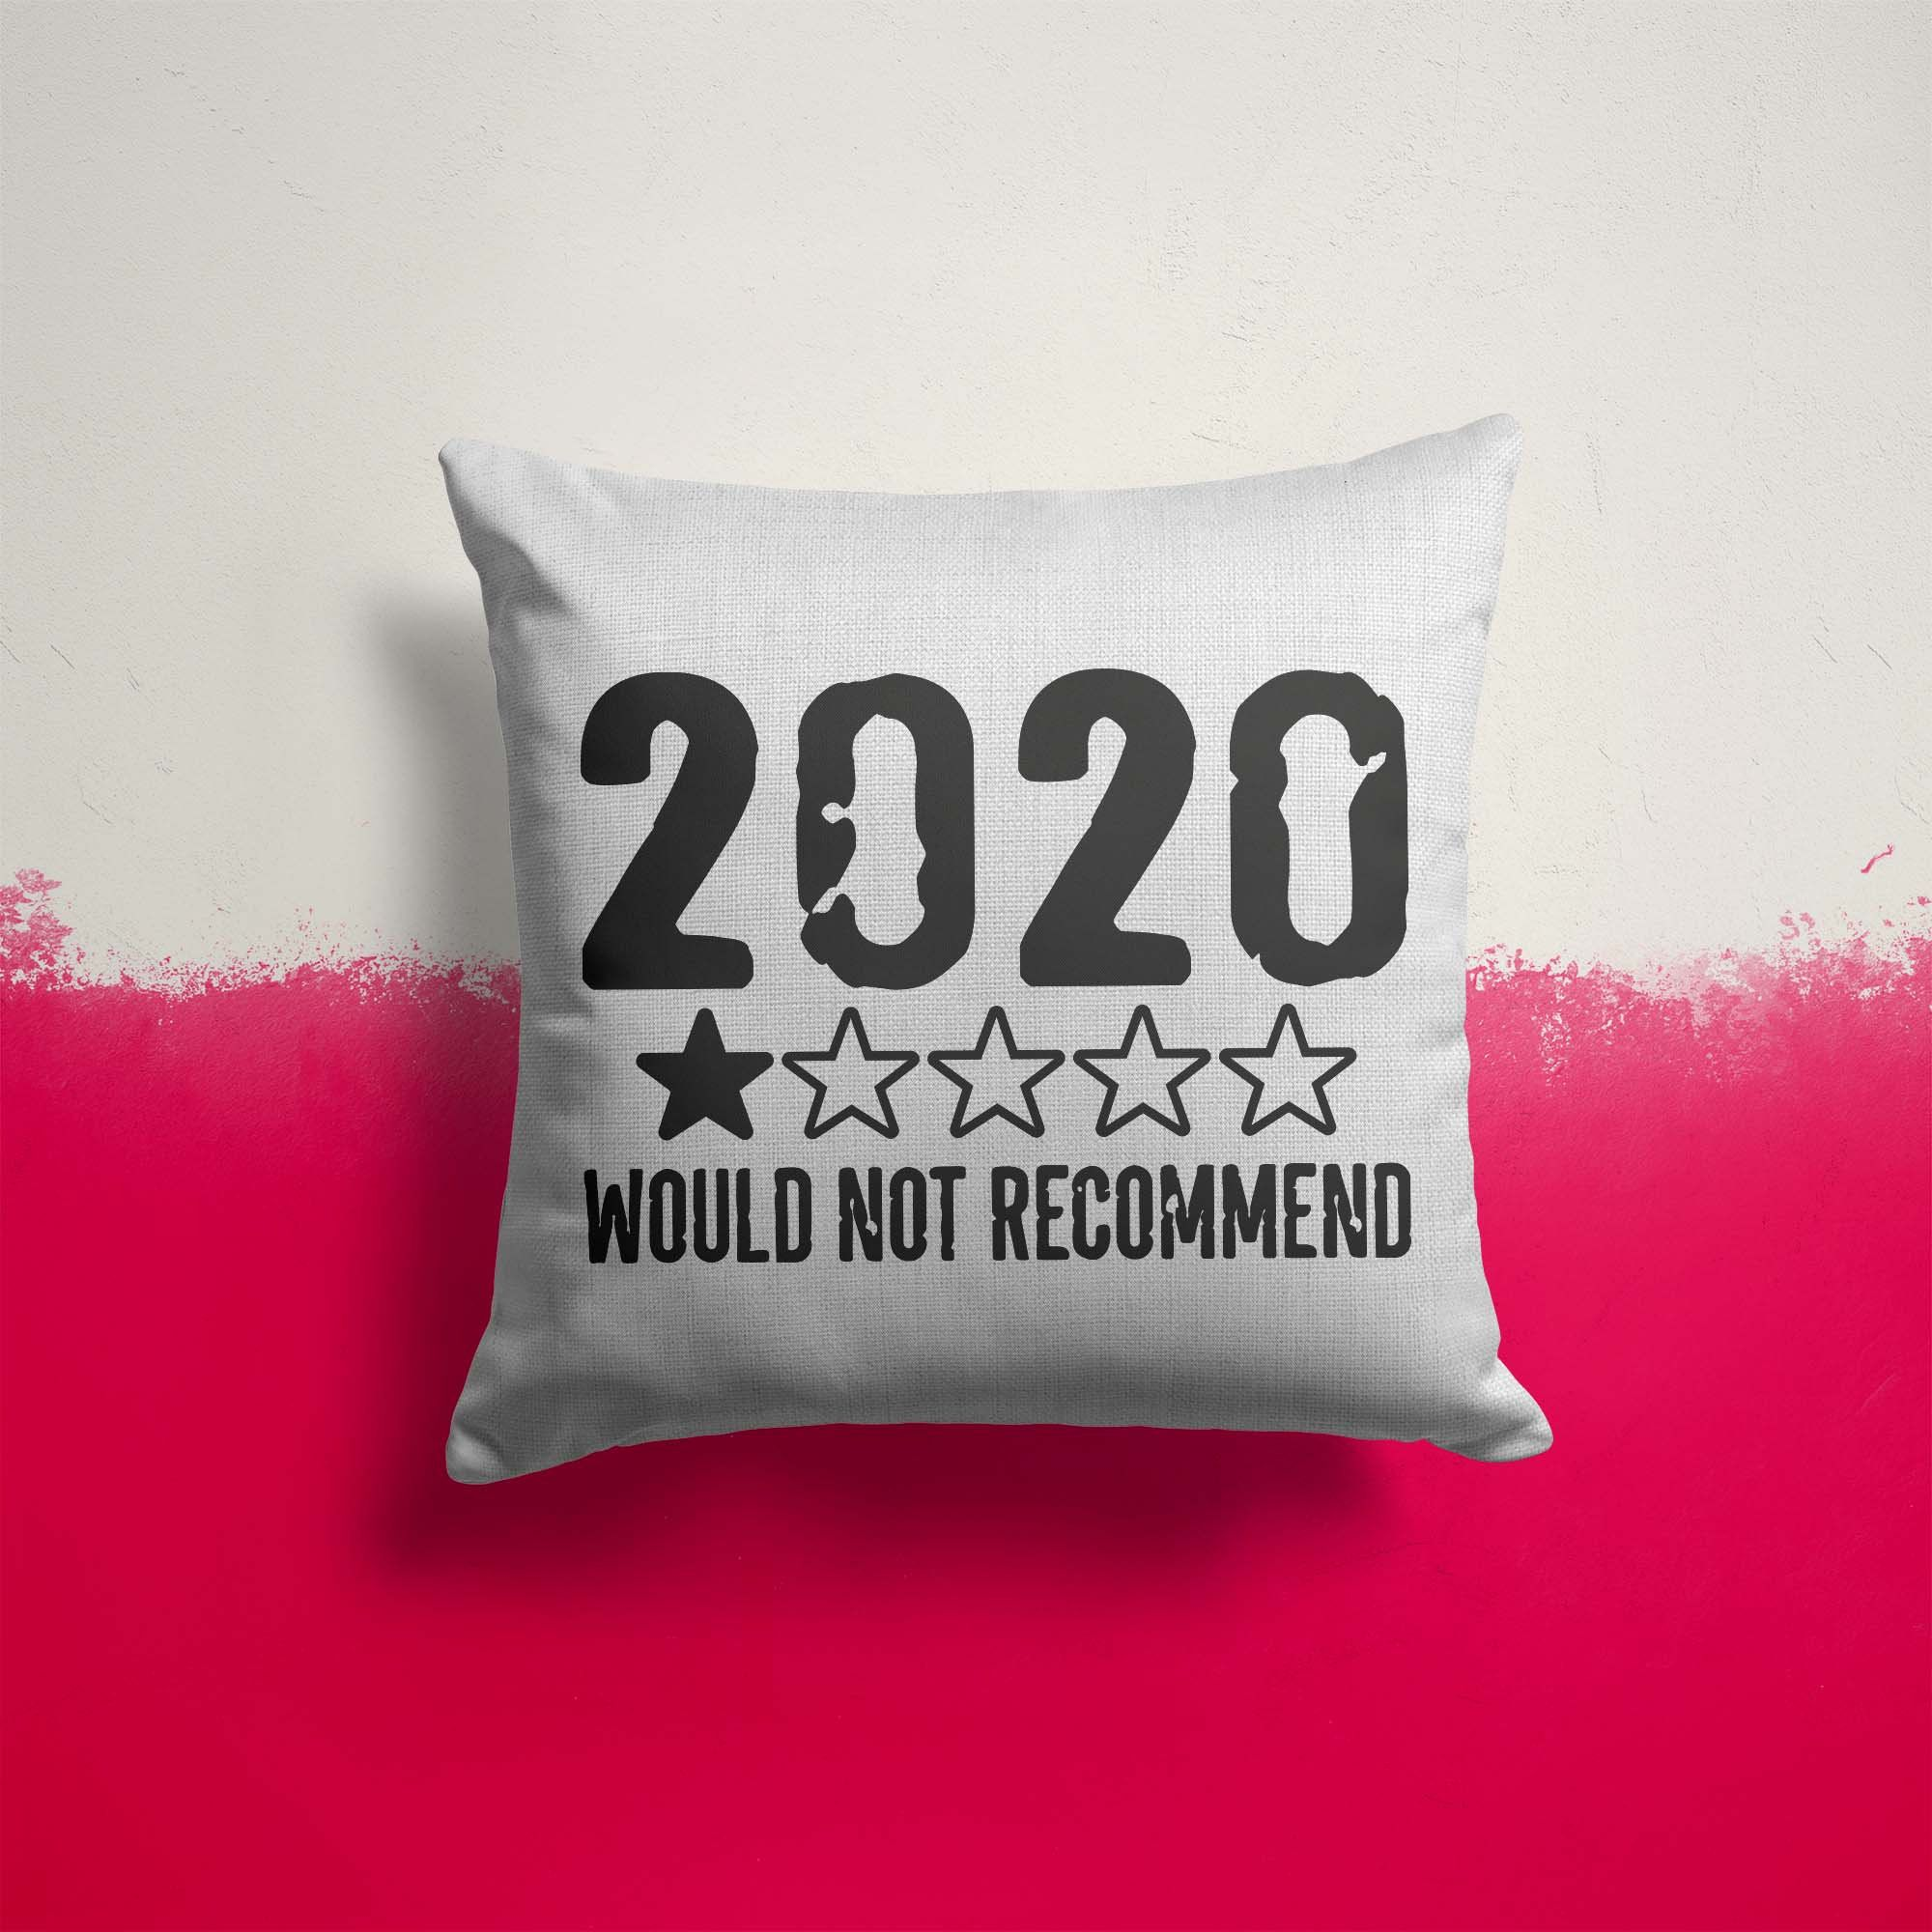 """Funny 2020 Pillow Cover 1 Star Not Recommend 2020 Fun Throw Pillow Case No Stars For Twenty Twenty Gift Idea 15.75"""""""